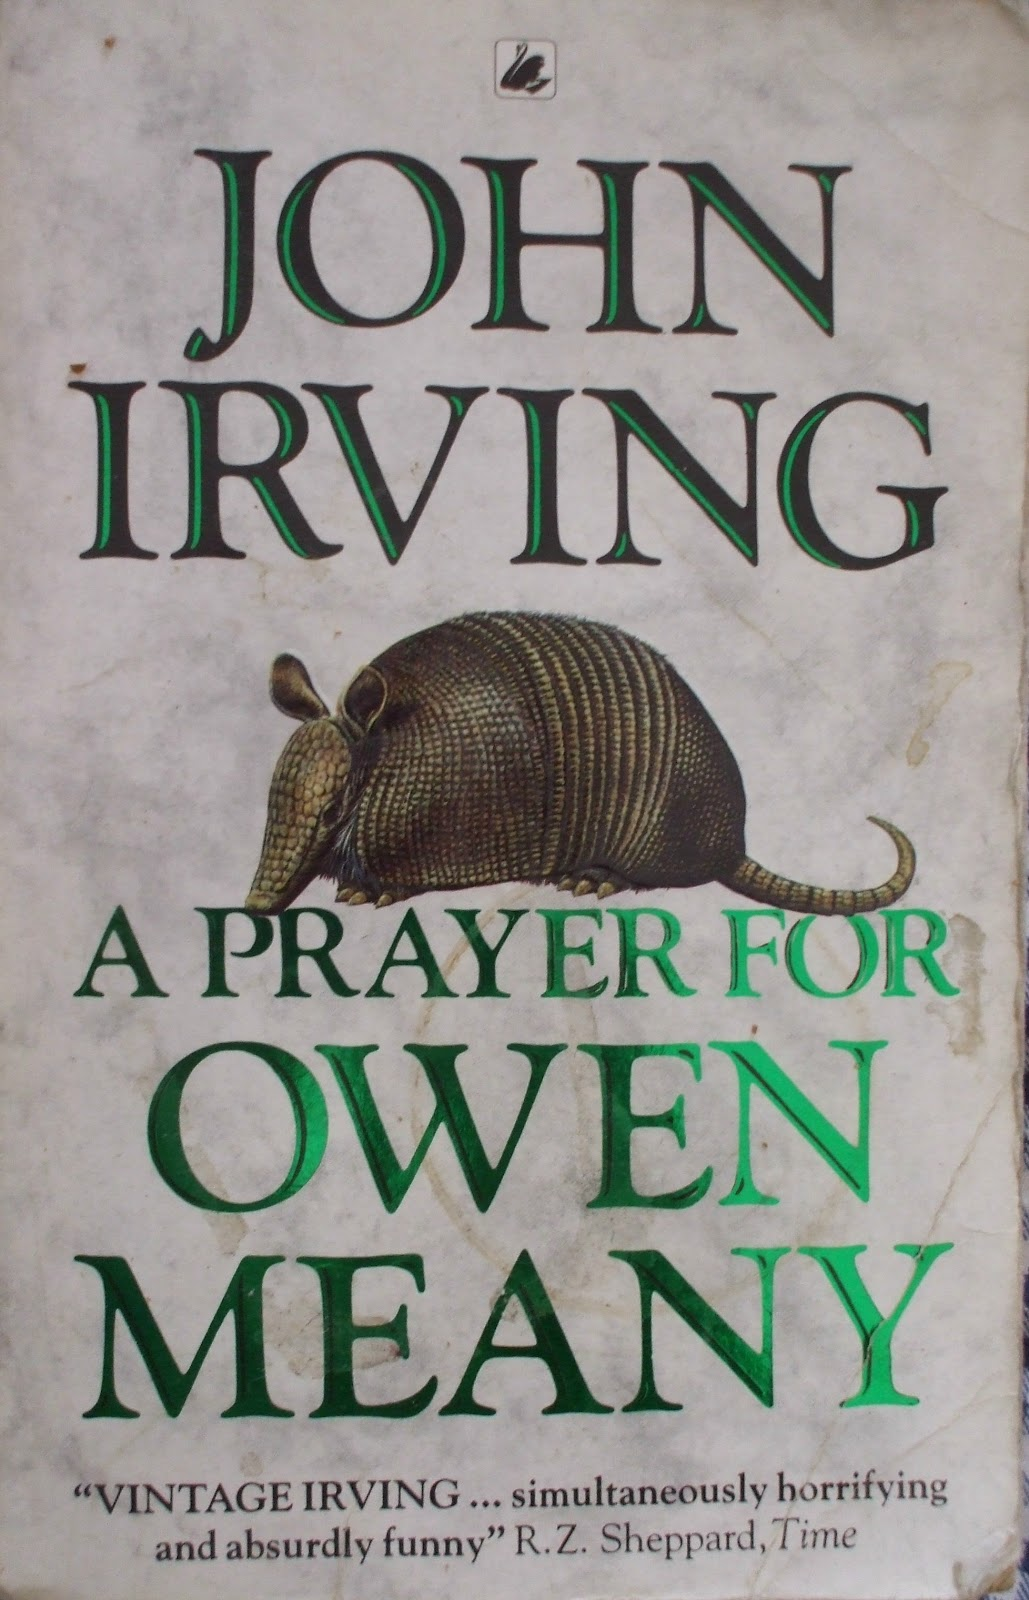 a prayer for owen meany memory Through the novel, a prayer for owen meany, irving focuses a great deal on the memory that john has about owen this, in turn, affects john as he cannot forget about owen and his death.